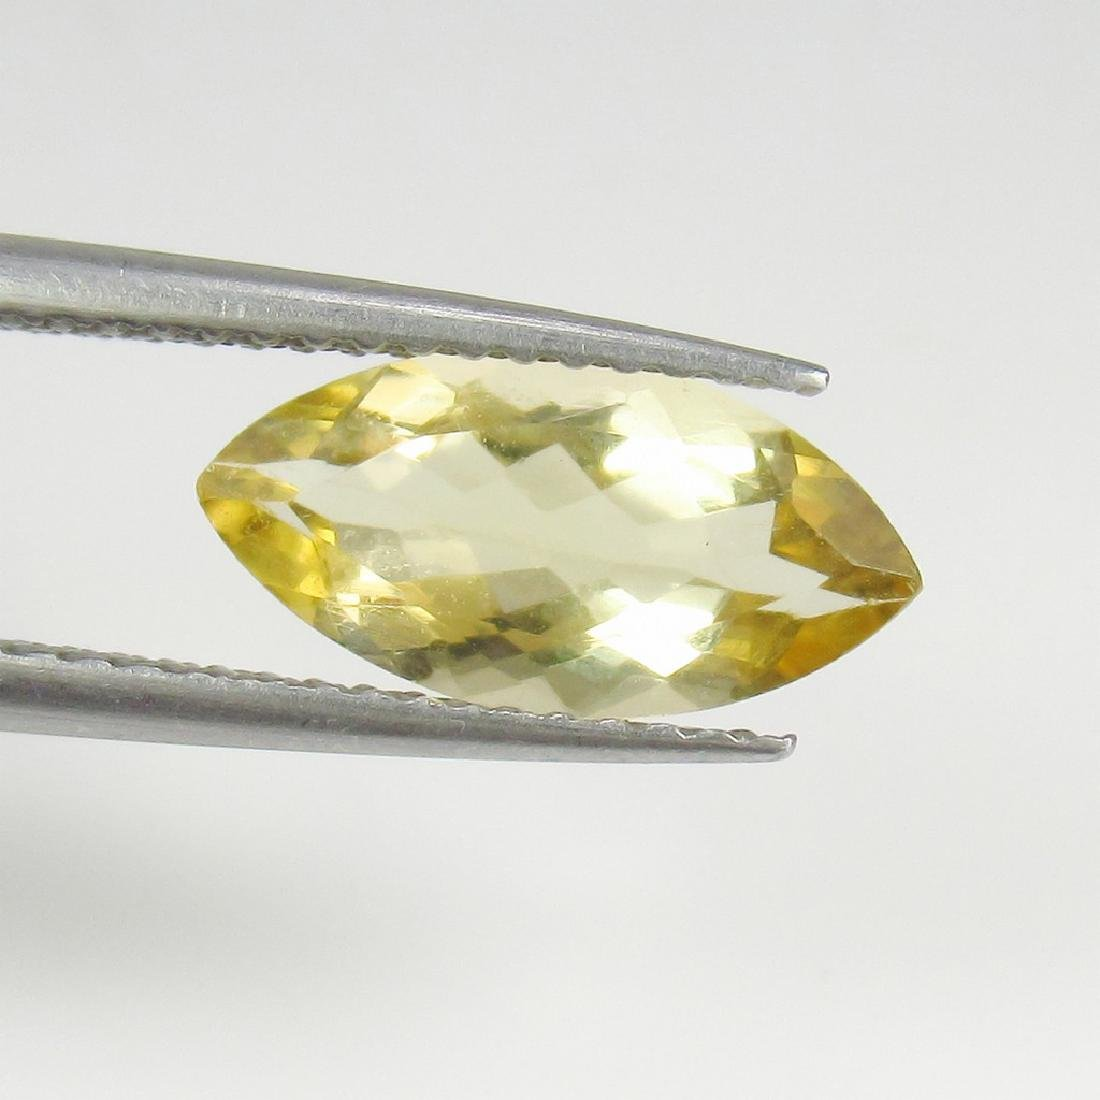 1.48 Ct Genuine Loose Yellow Scapolite Rare Marquise